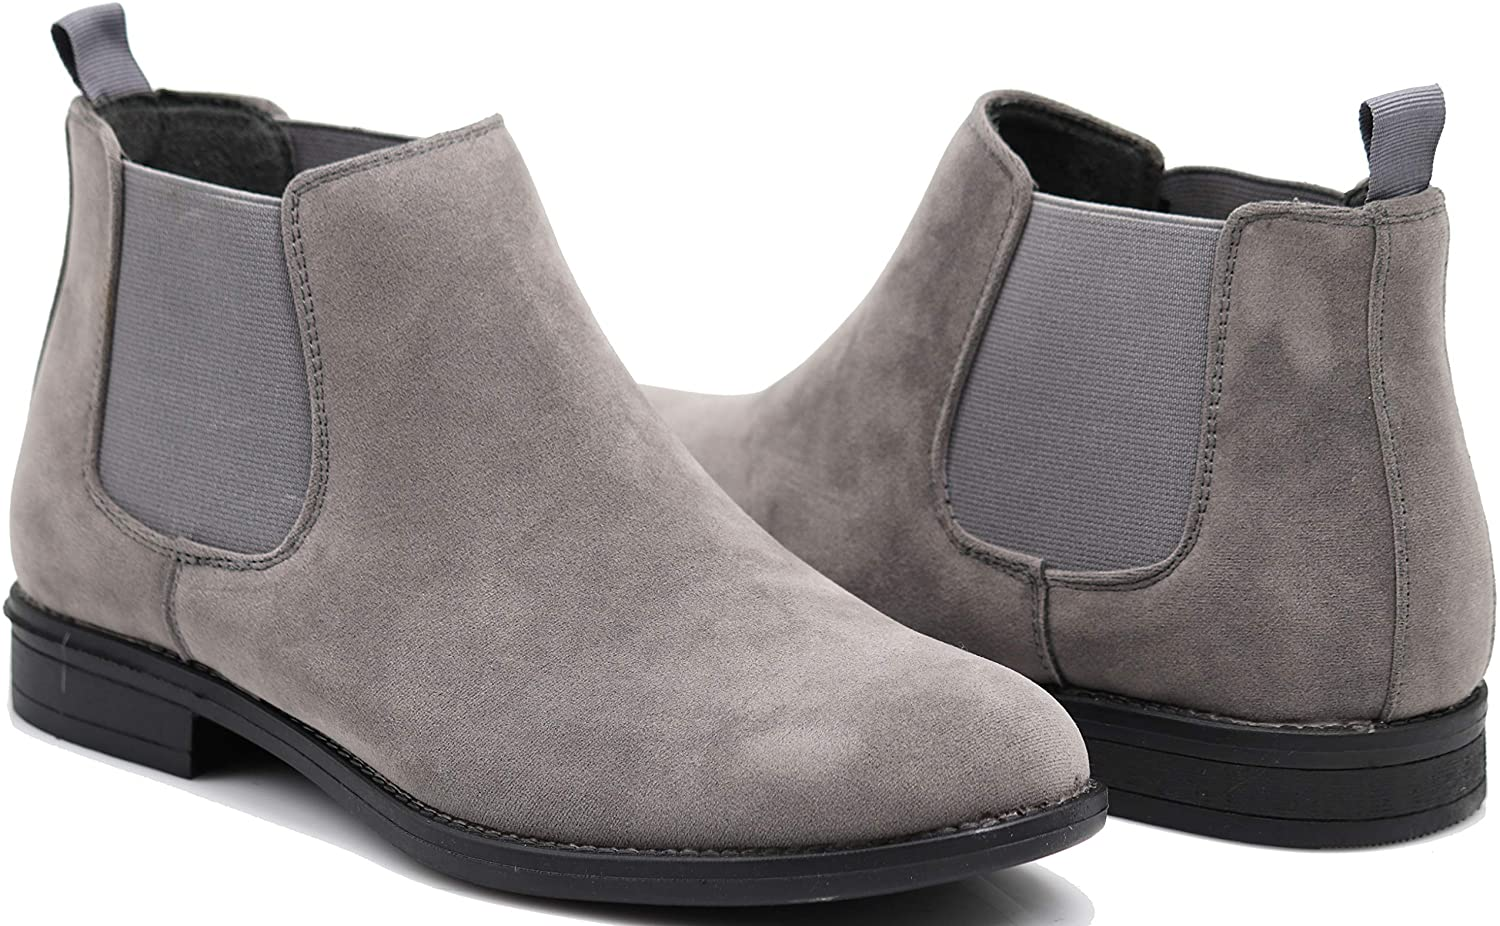 SHL Men's Chelsea Boots Dress Fashion Slip On Classic Ankle Boots (10.5, Grey)